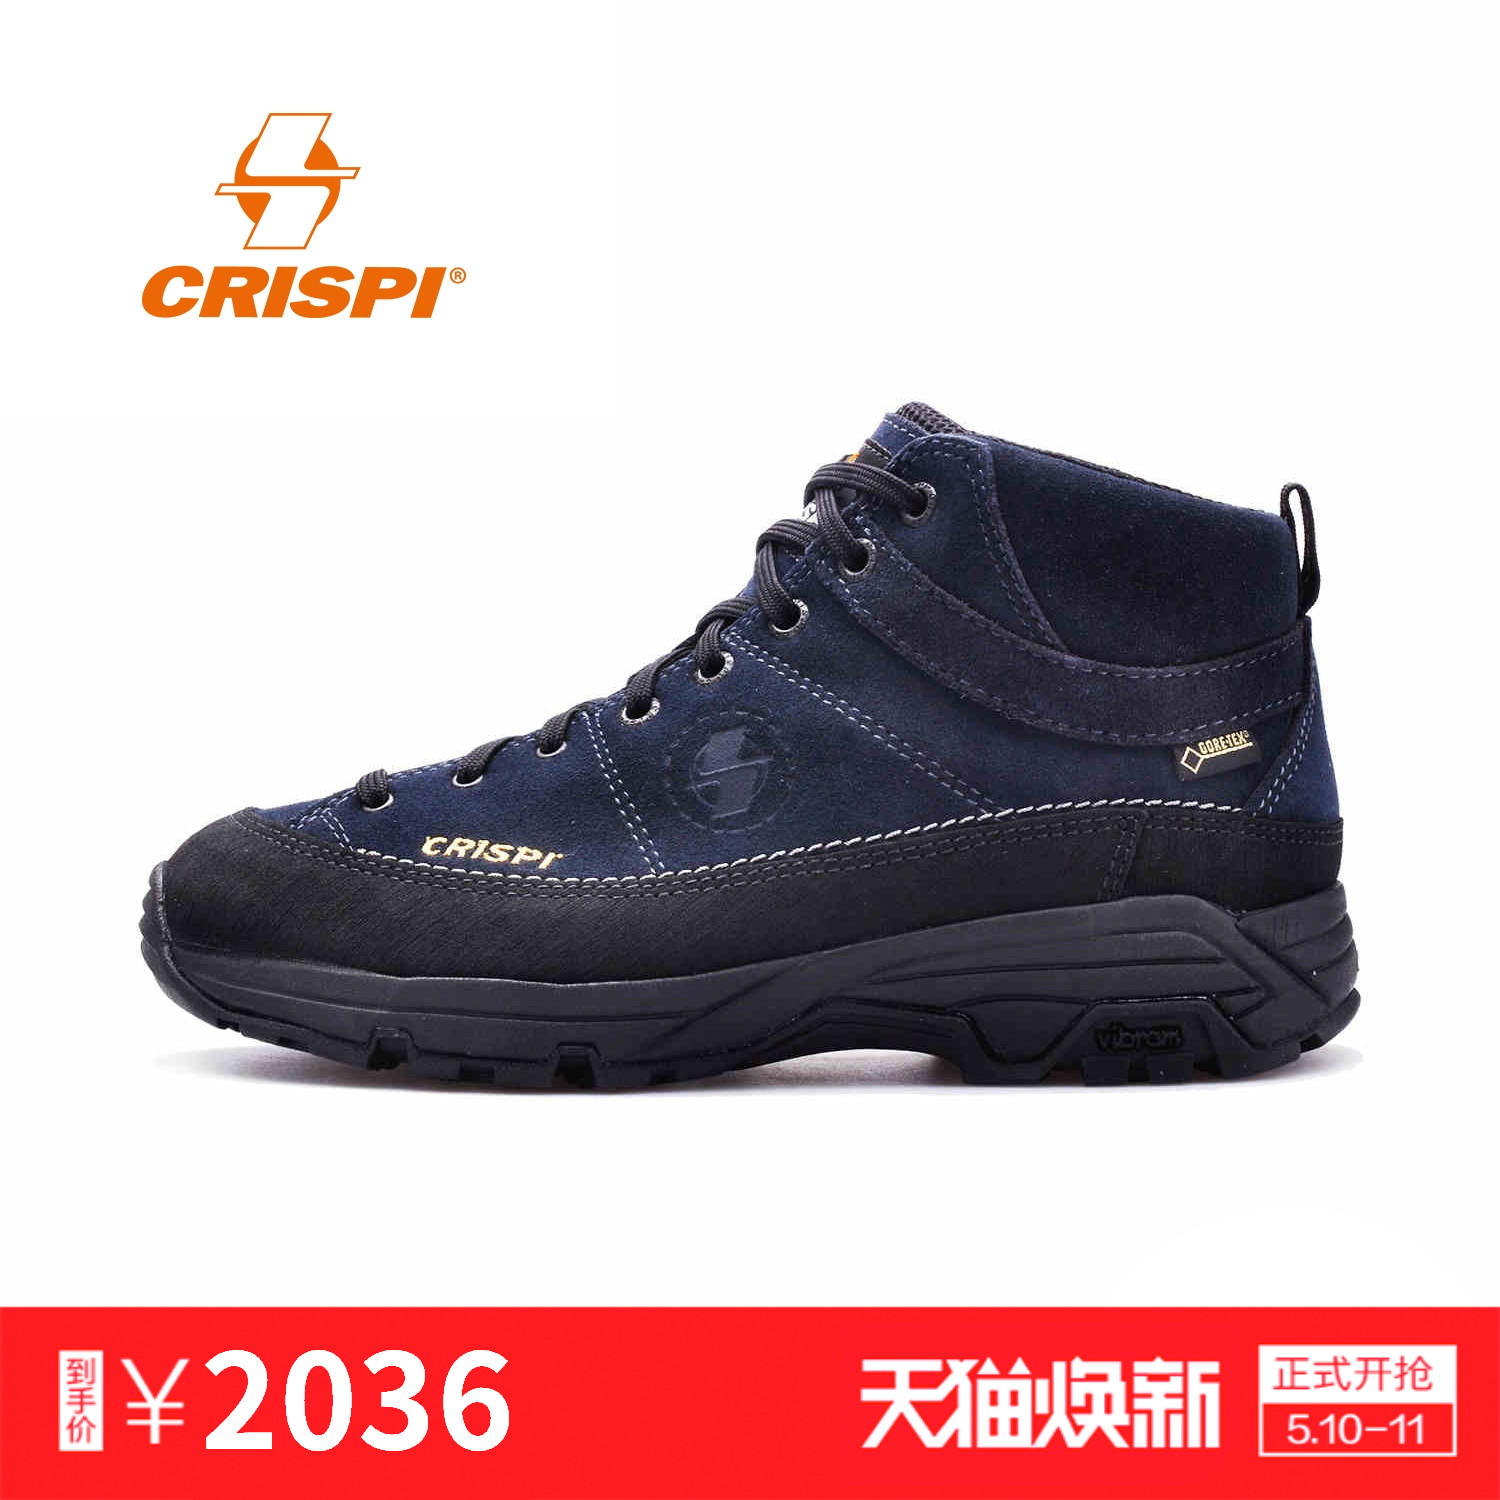 CRISPI A Way GTX Summer Men's Waterproof, Portable, Air-permeable, Wear-resistant, Skid-proof Outdoor Female Hiking Shoes